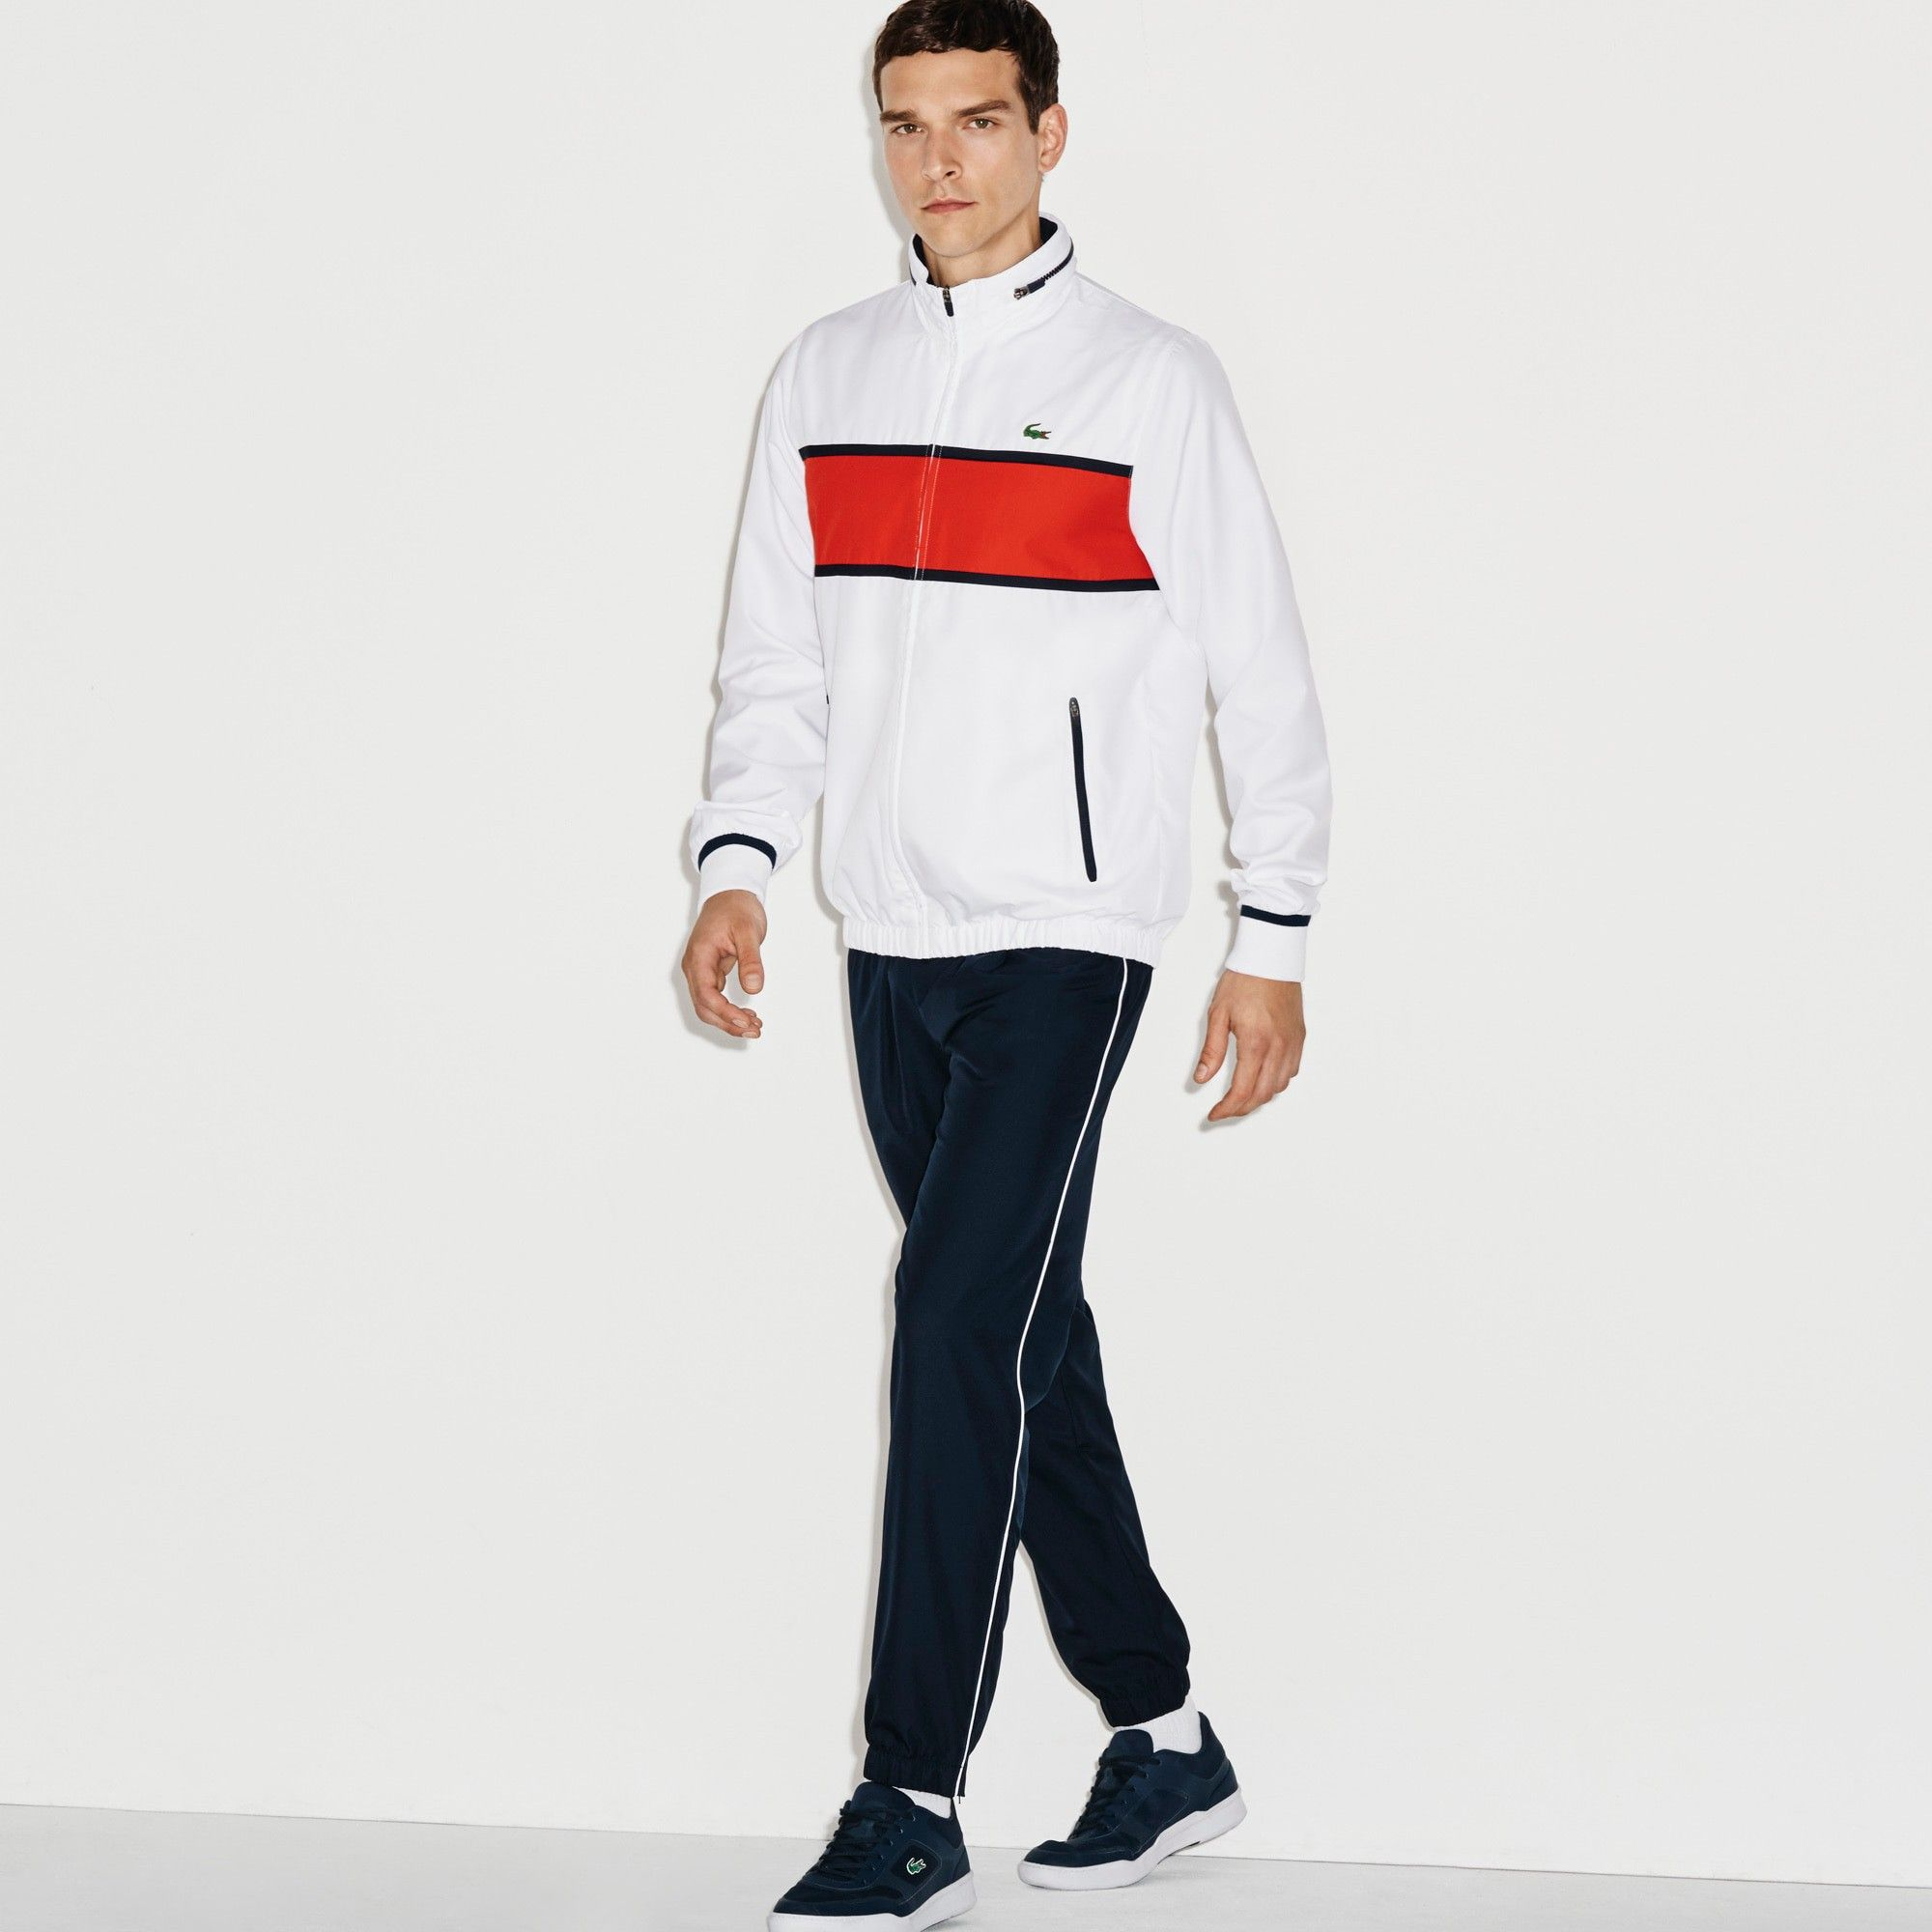 5492a29127 LACOSTE Men's SPORT Colorblock Tennis Tracksuit - white/lust red ...